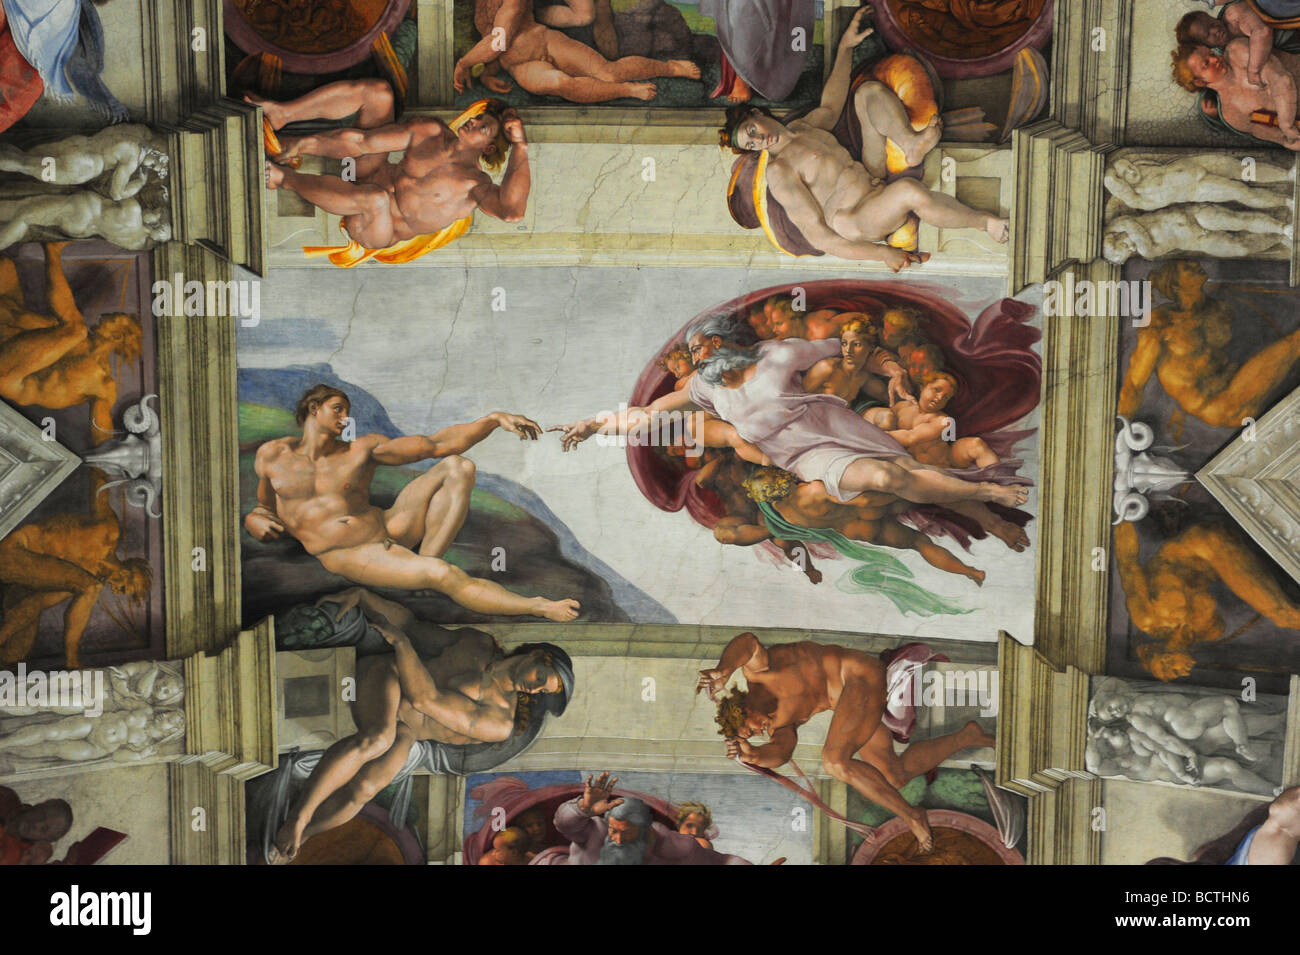 8da564727a5e Europe vatican city Vatican Museum The Creation of Adam by Michelangelo on  the ceiling of the Sistine Chapel